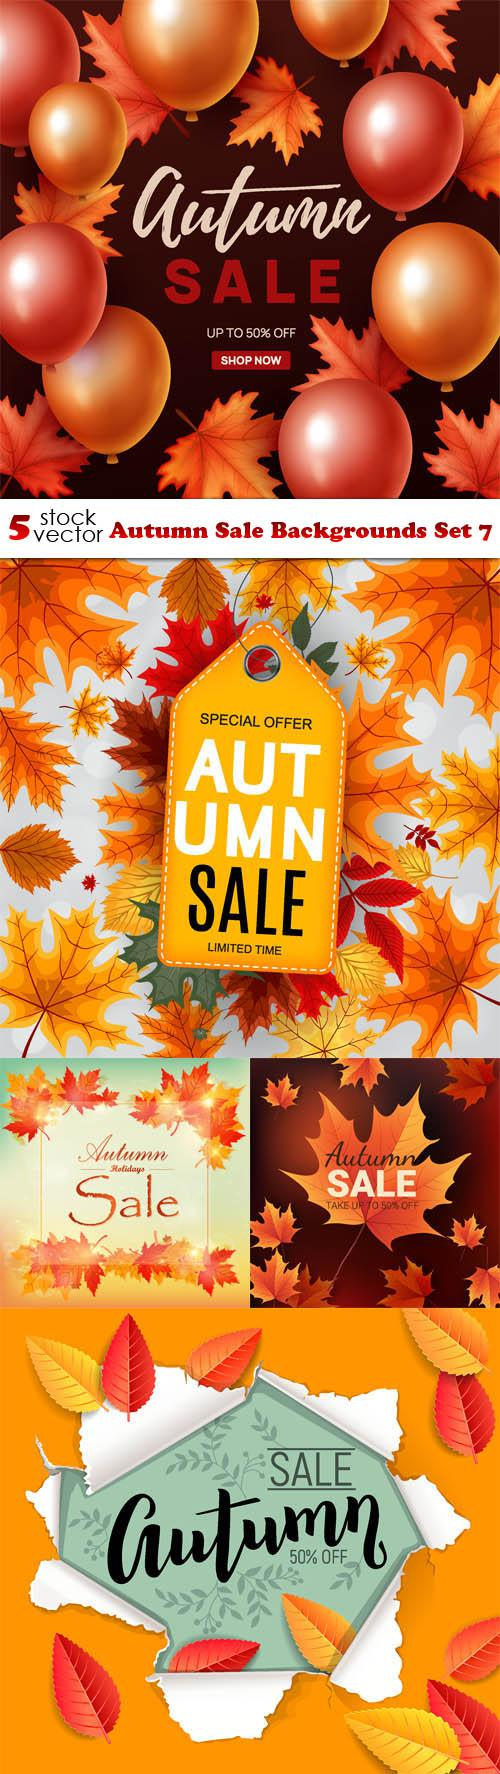 Autumn Sale Backgrounds Set 7